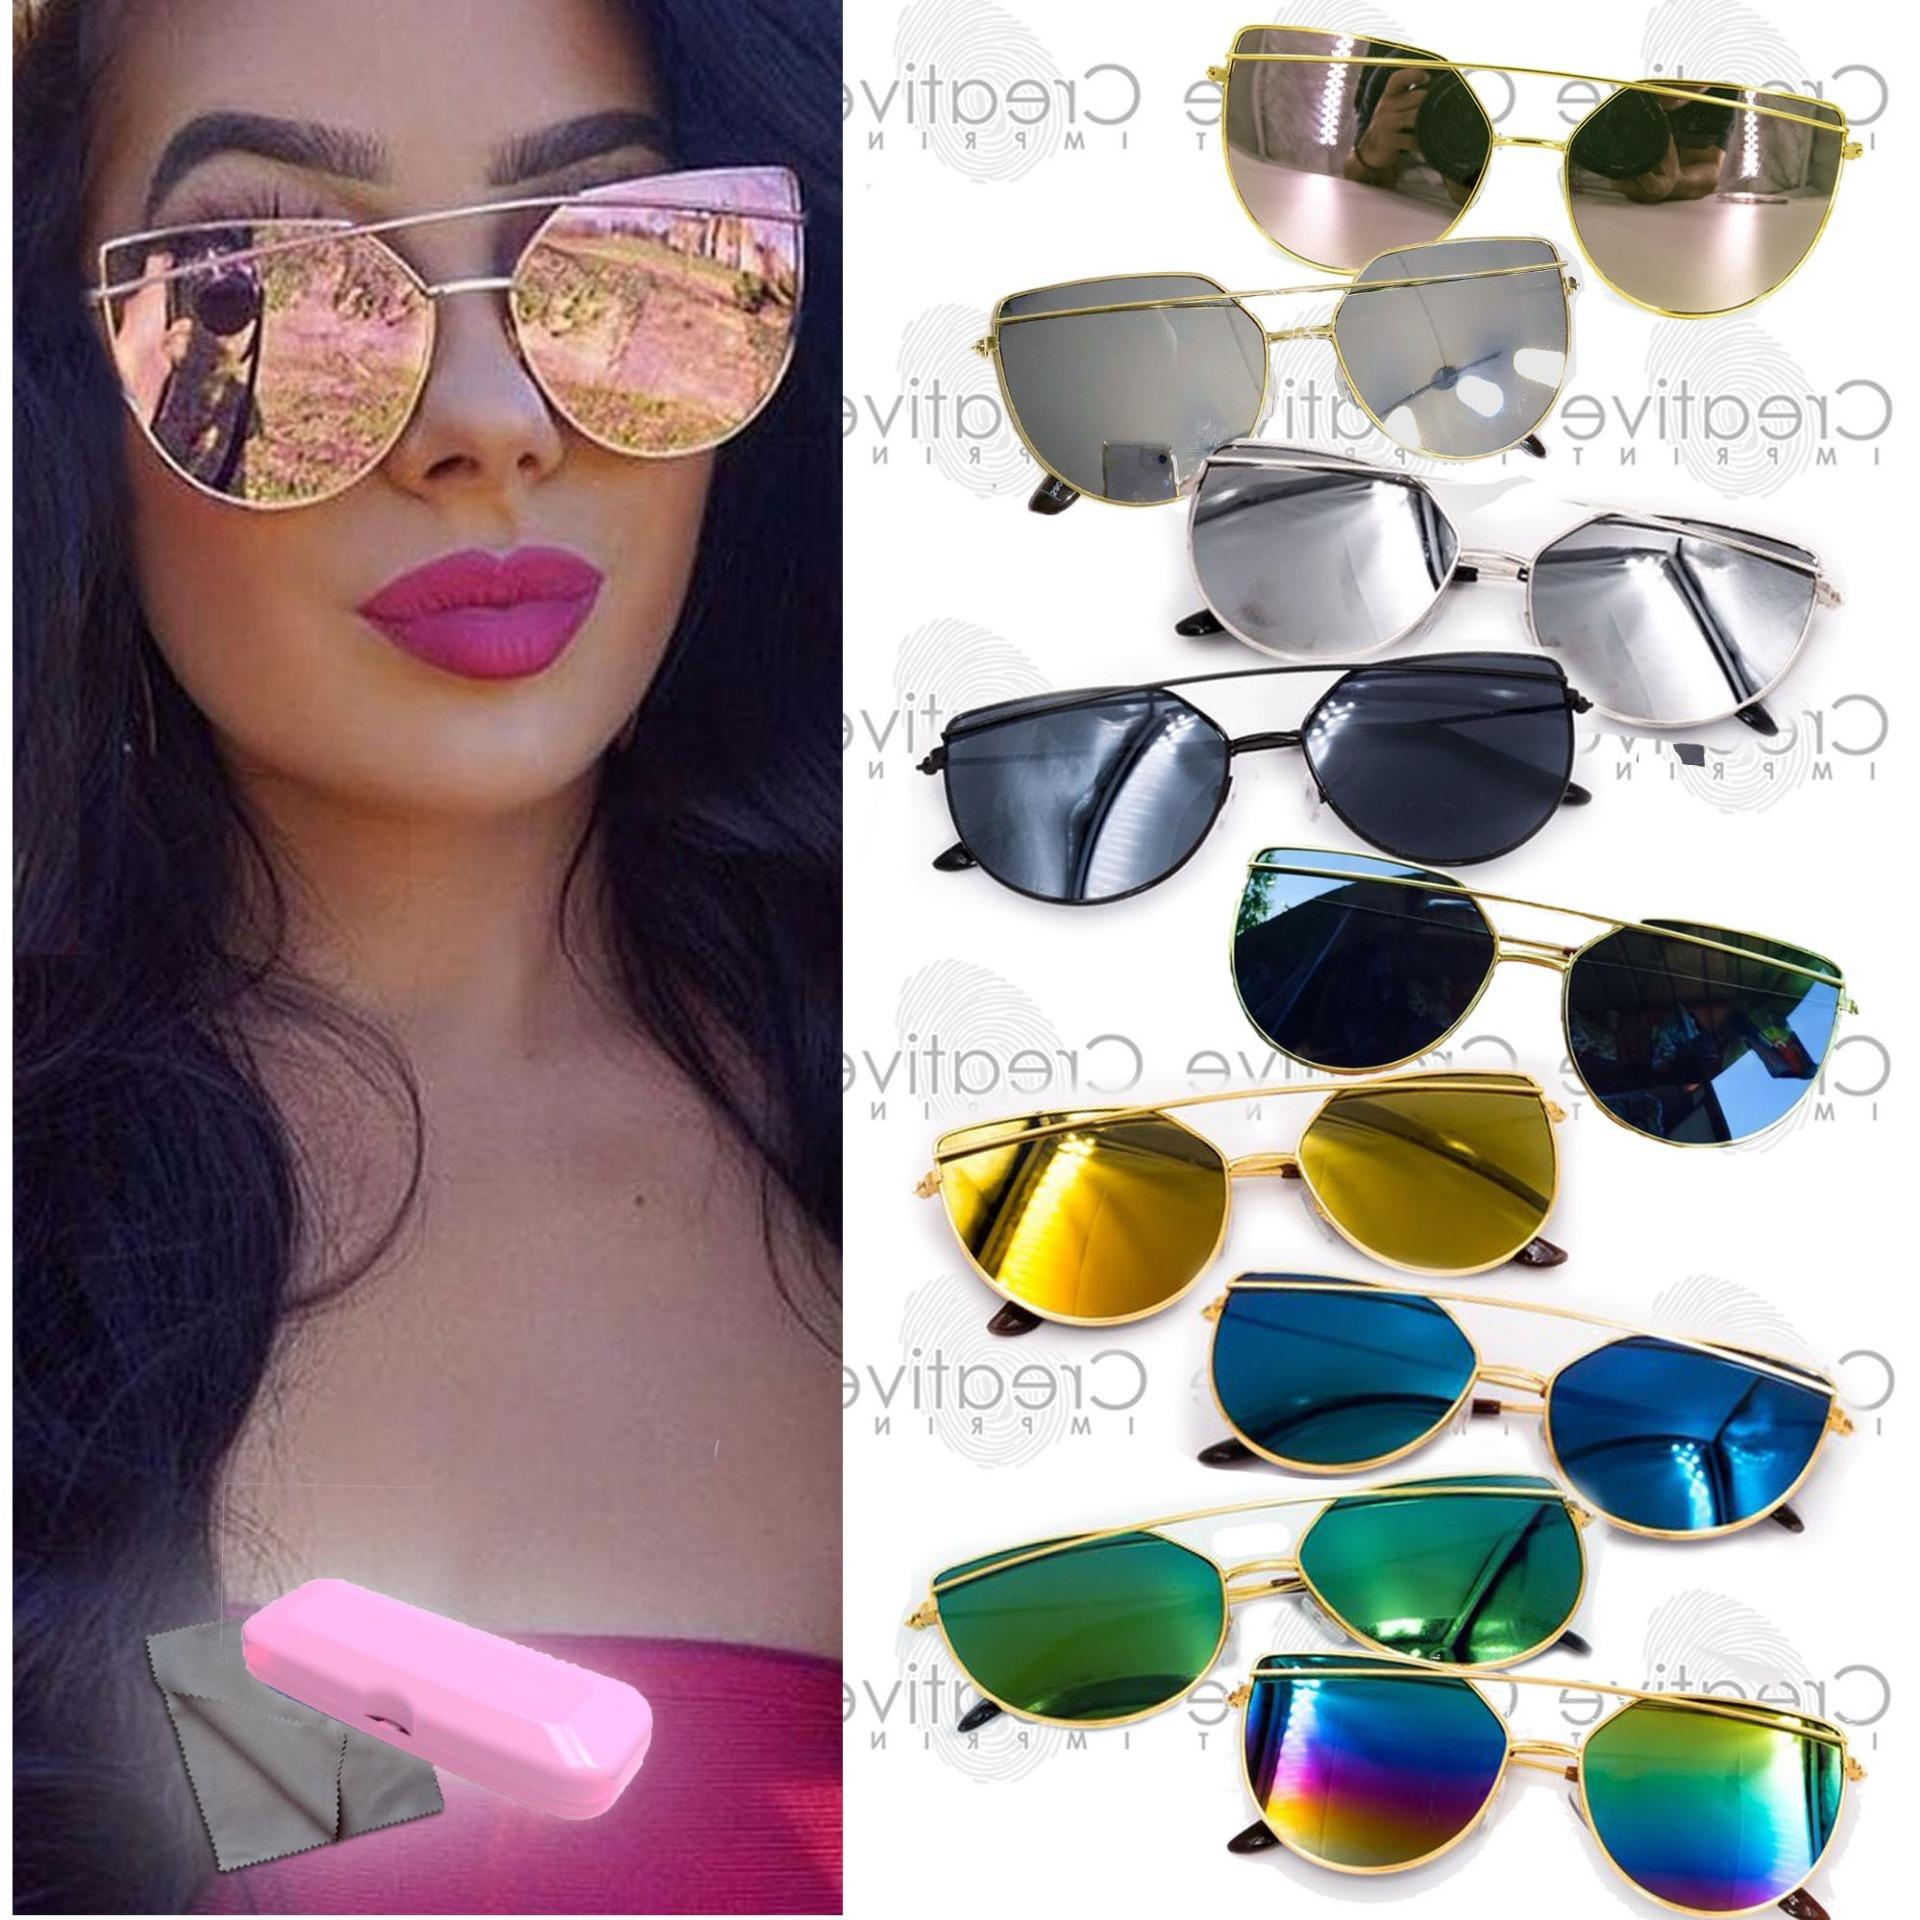 562a8e41494 Double Bridge Cat Eye Flat Sunnies Sunglasses (FREE CASE WIPER) Shades  Light Metal Lens Frame Mirror Trendy Korean Fashion Eyewear UVA UVB  Protection